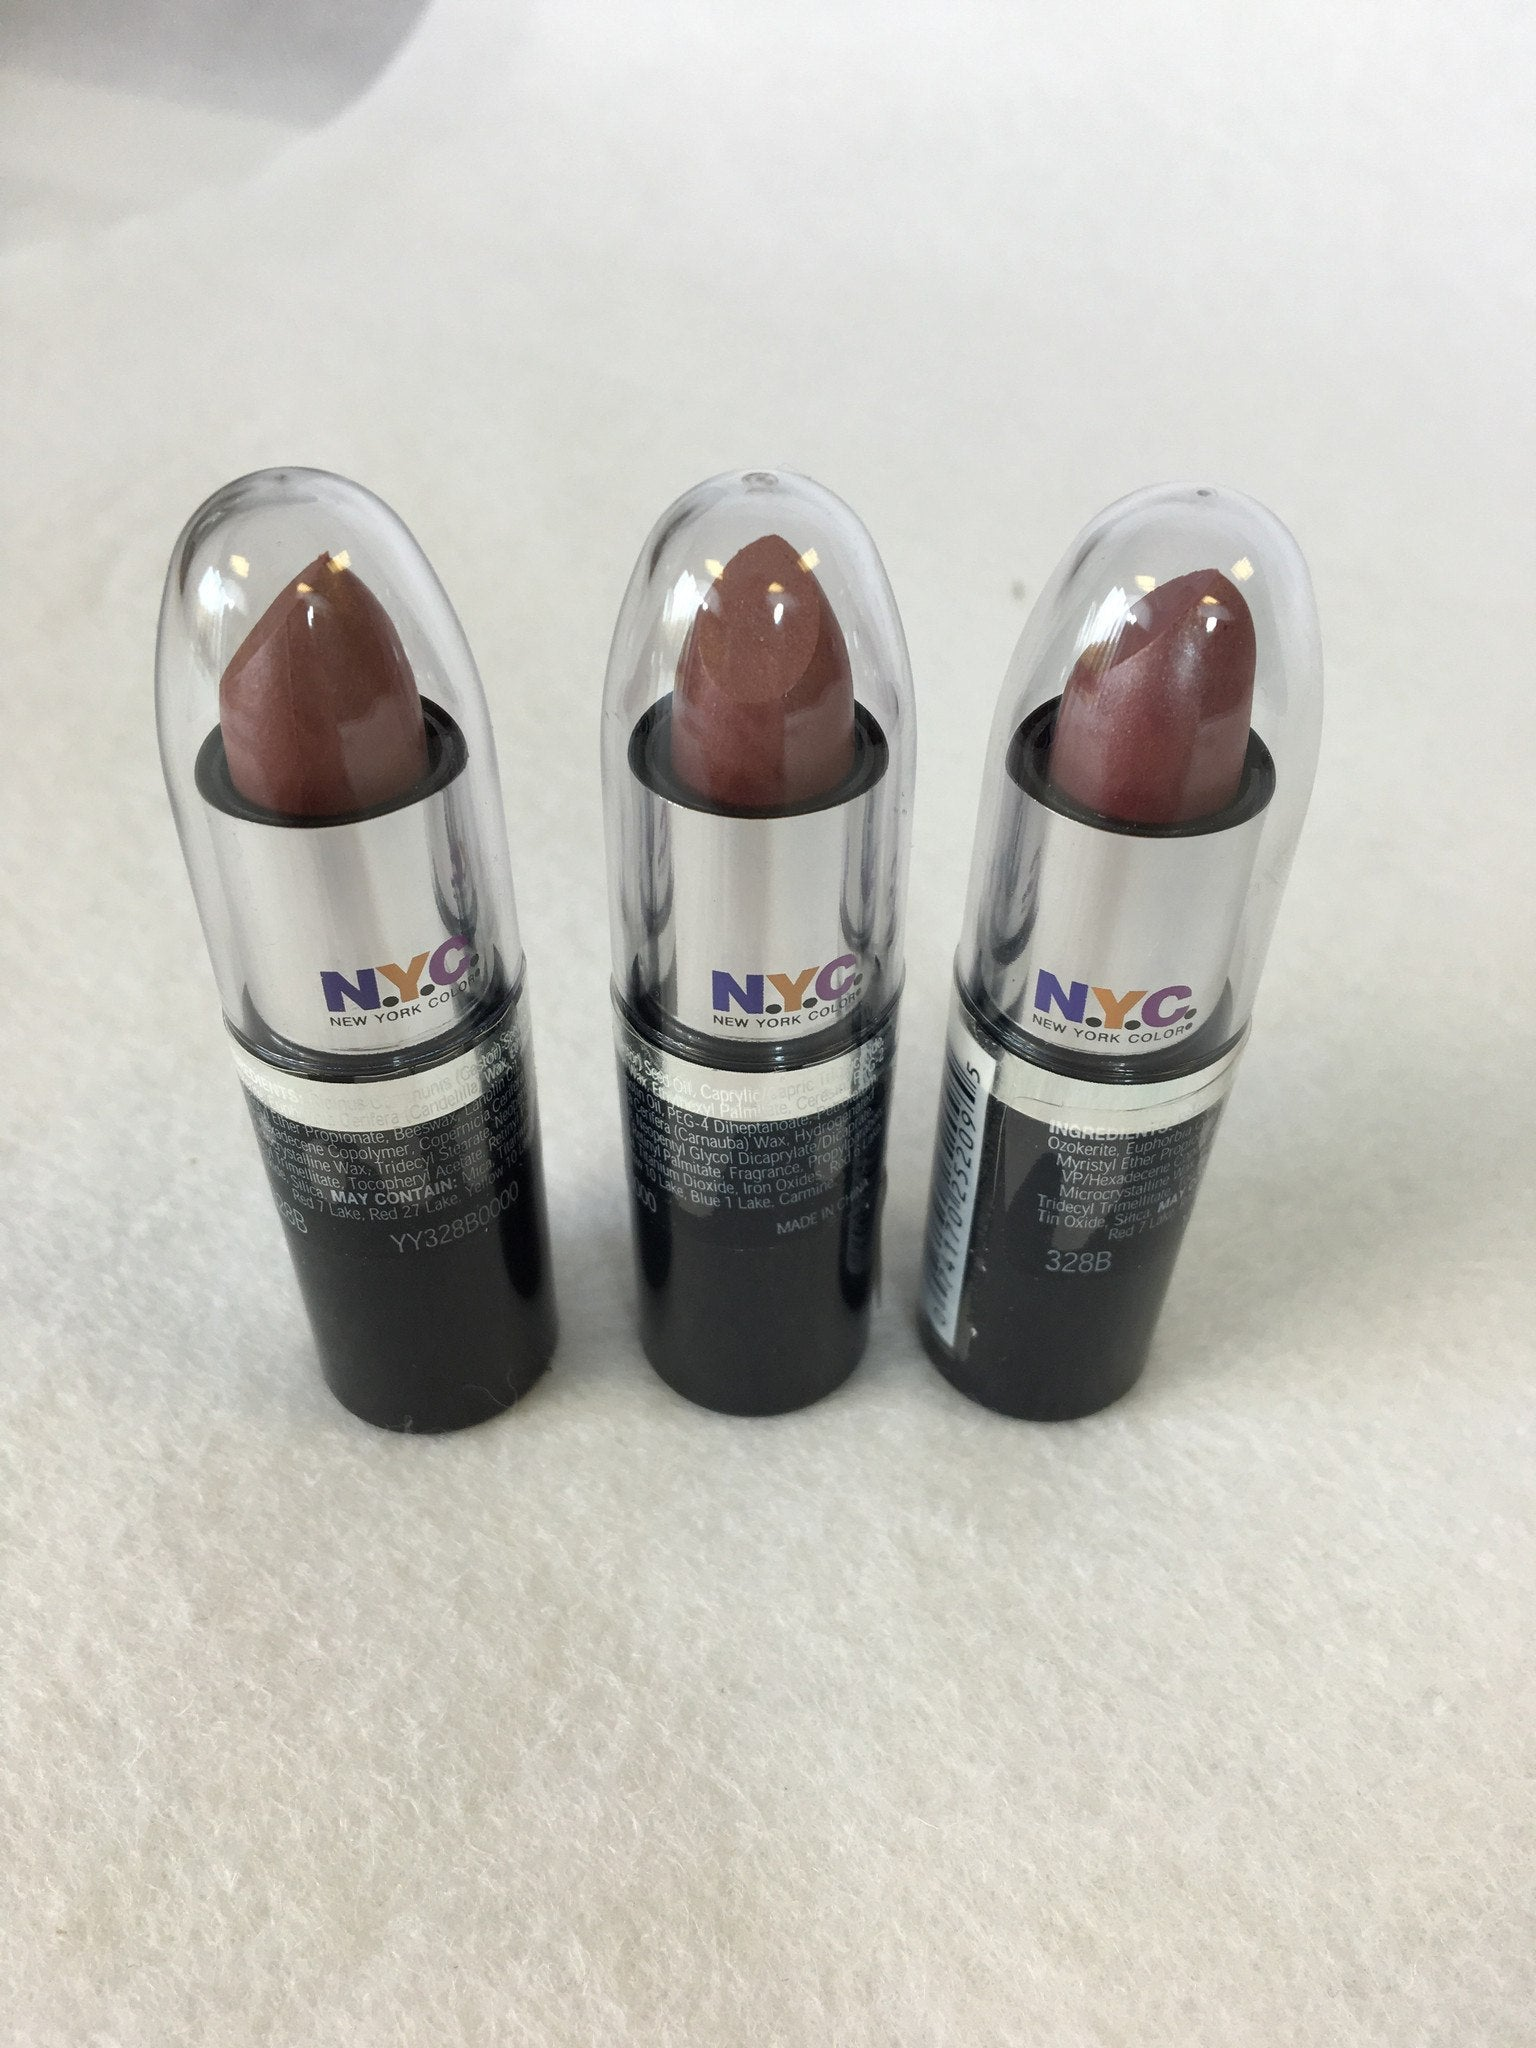 NYC Ultra Moist Lip Wear Lipstick 328B Plum Rum x 12 (£0.50 each) - Fizzy Peach Ltd